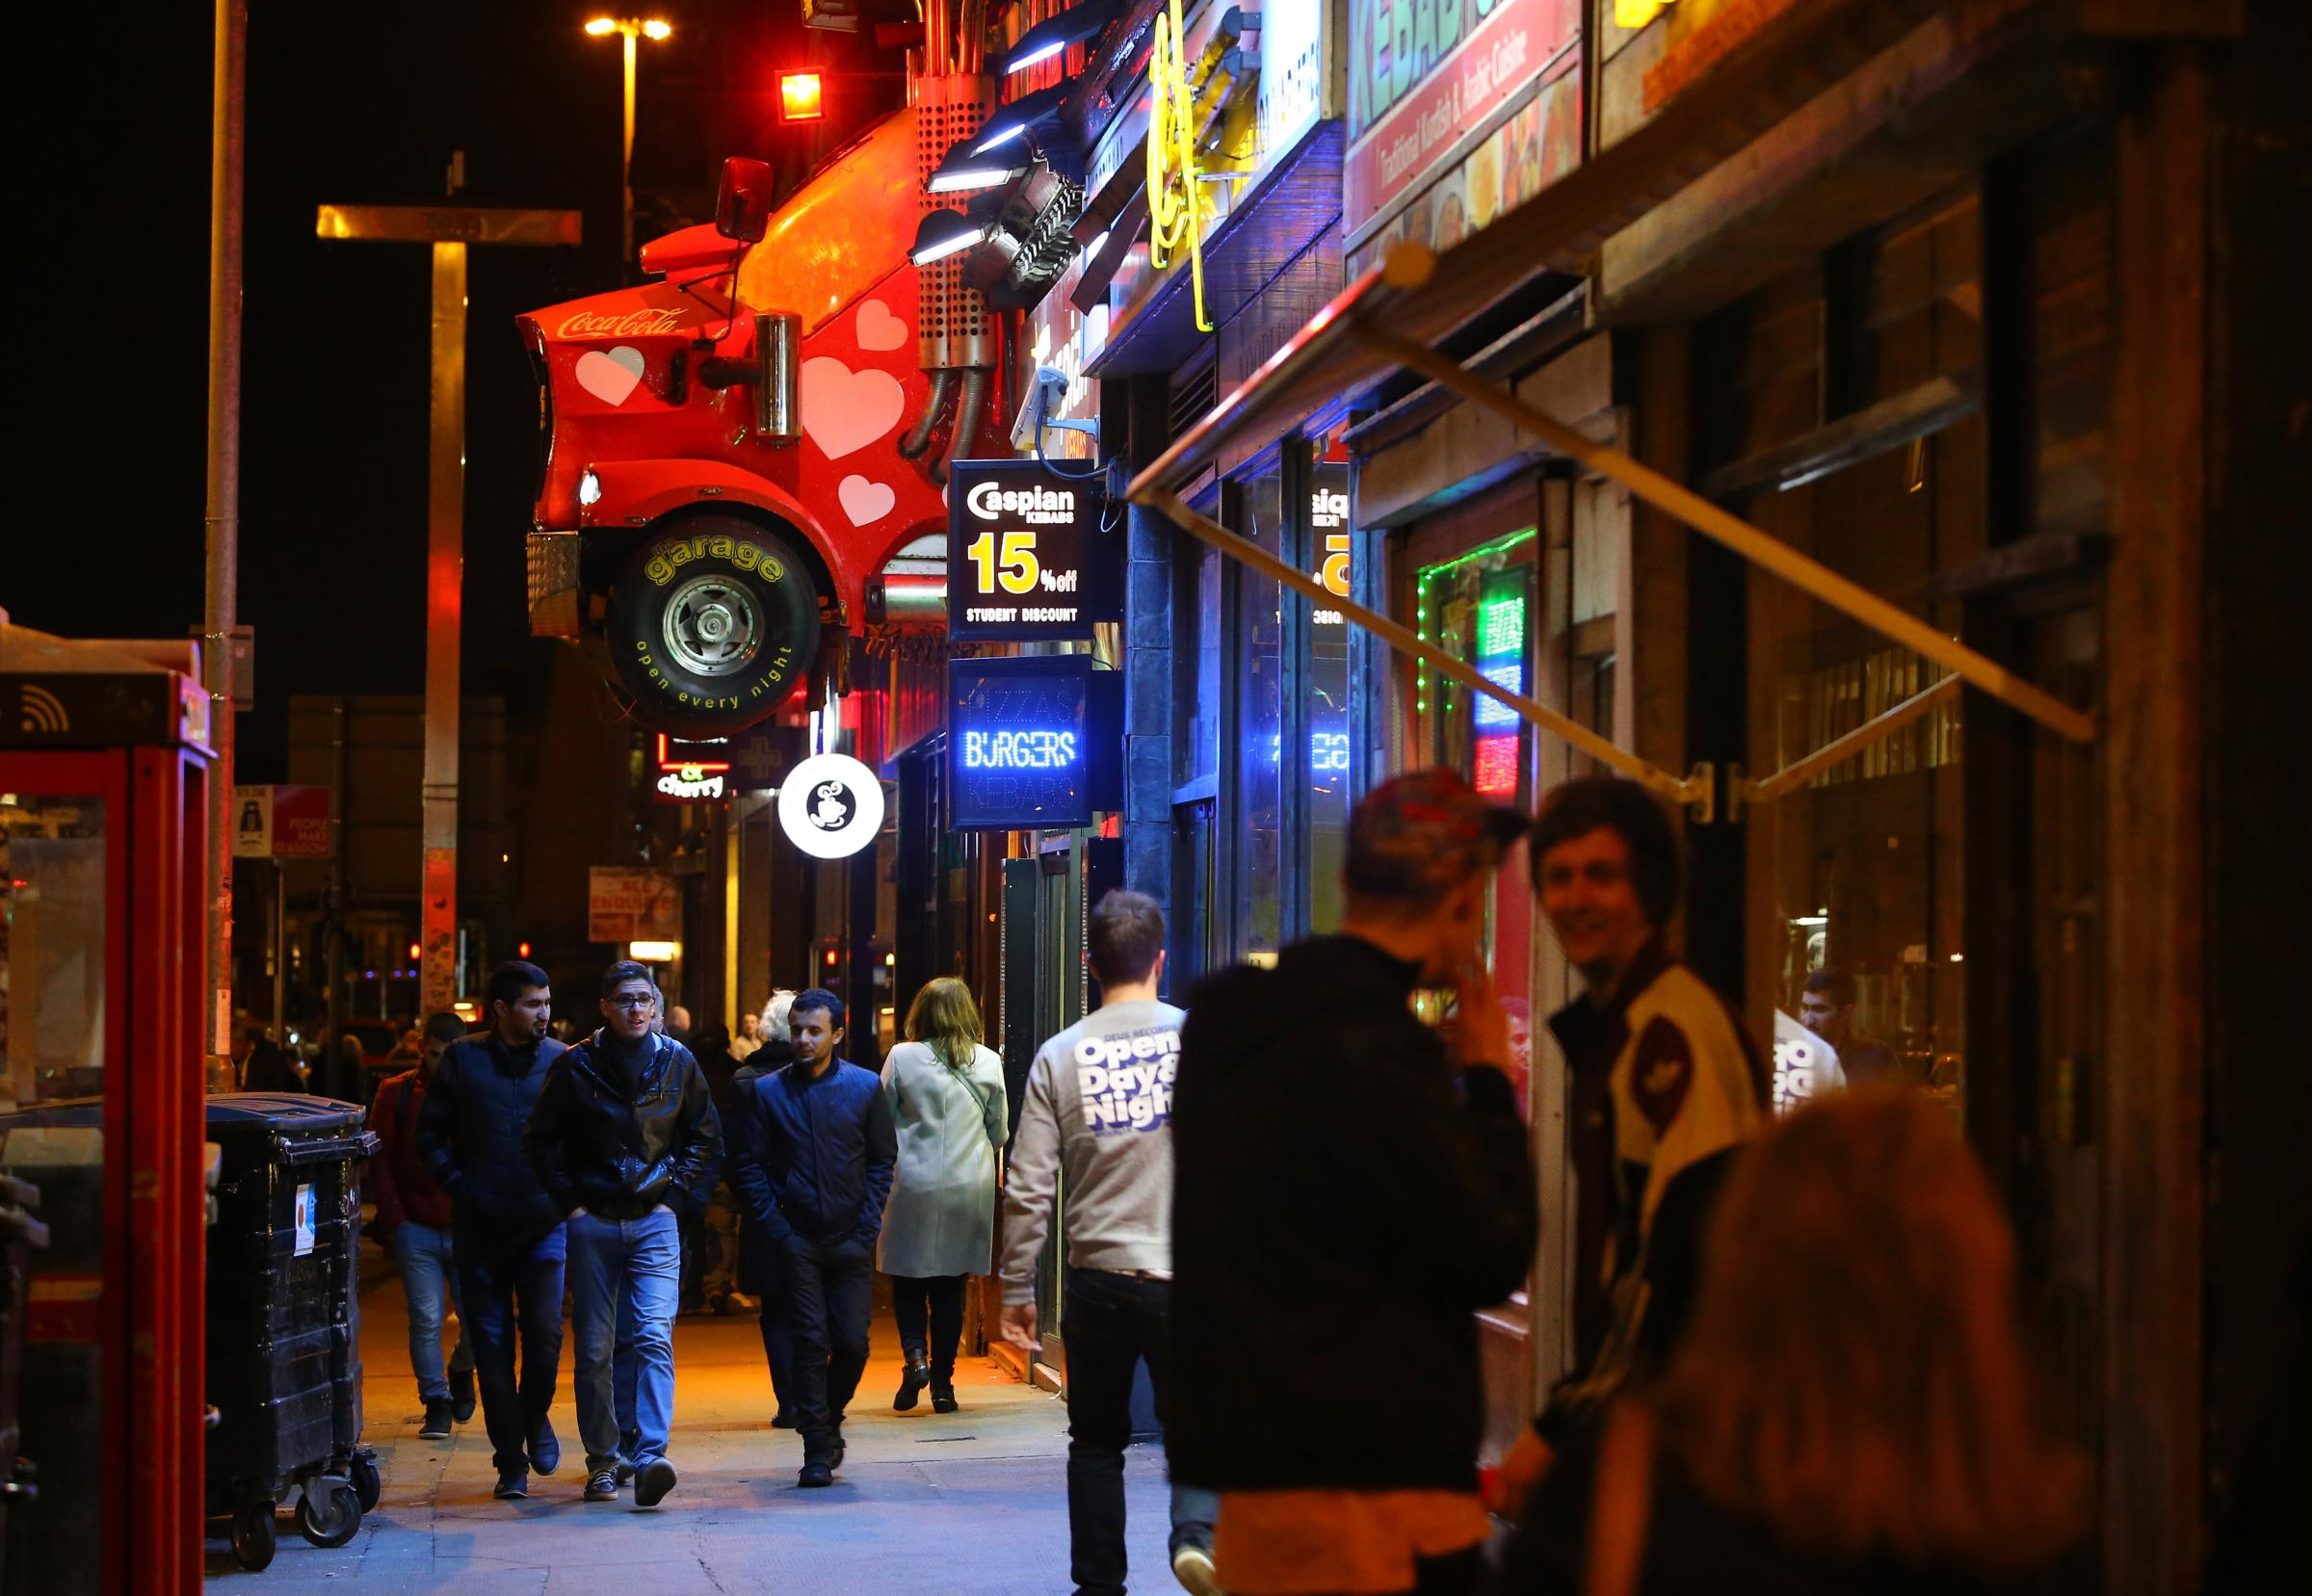 Glasgow's The Garage owner blasts late night transport for city revellers